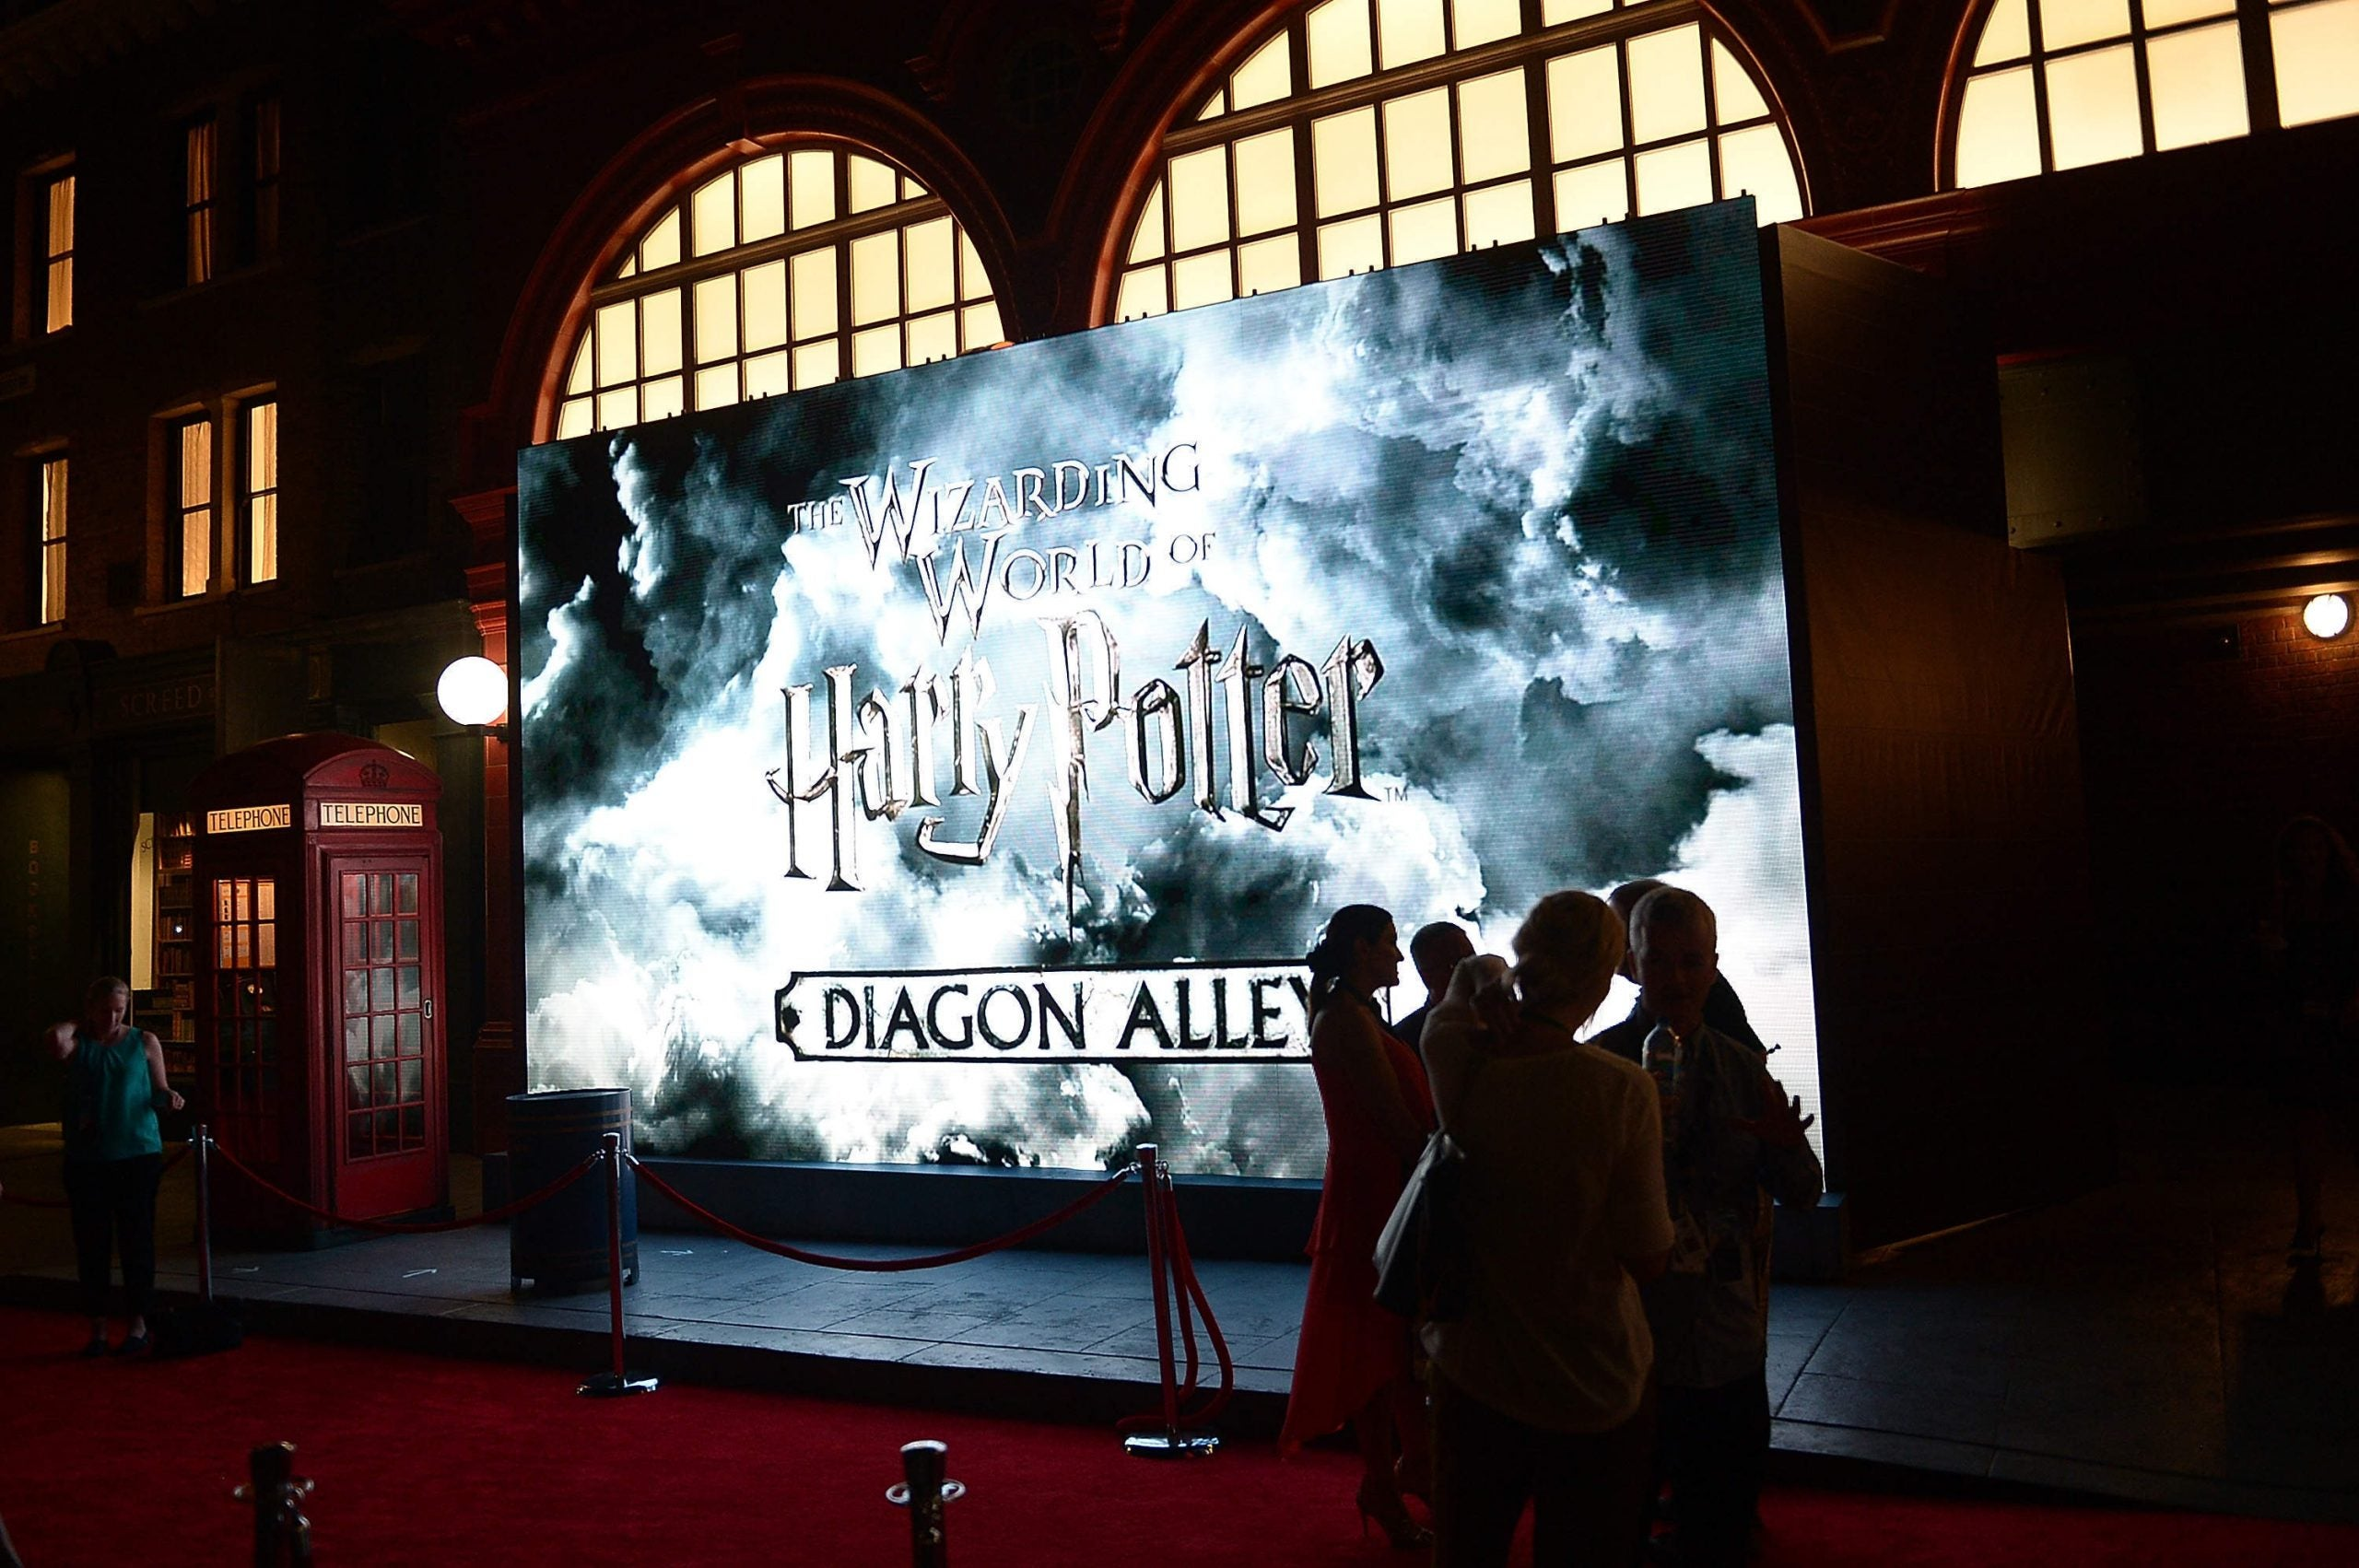 Harry Potter isn't over, but what happens when a fandom grows up?